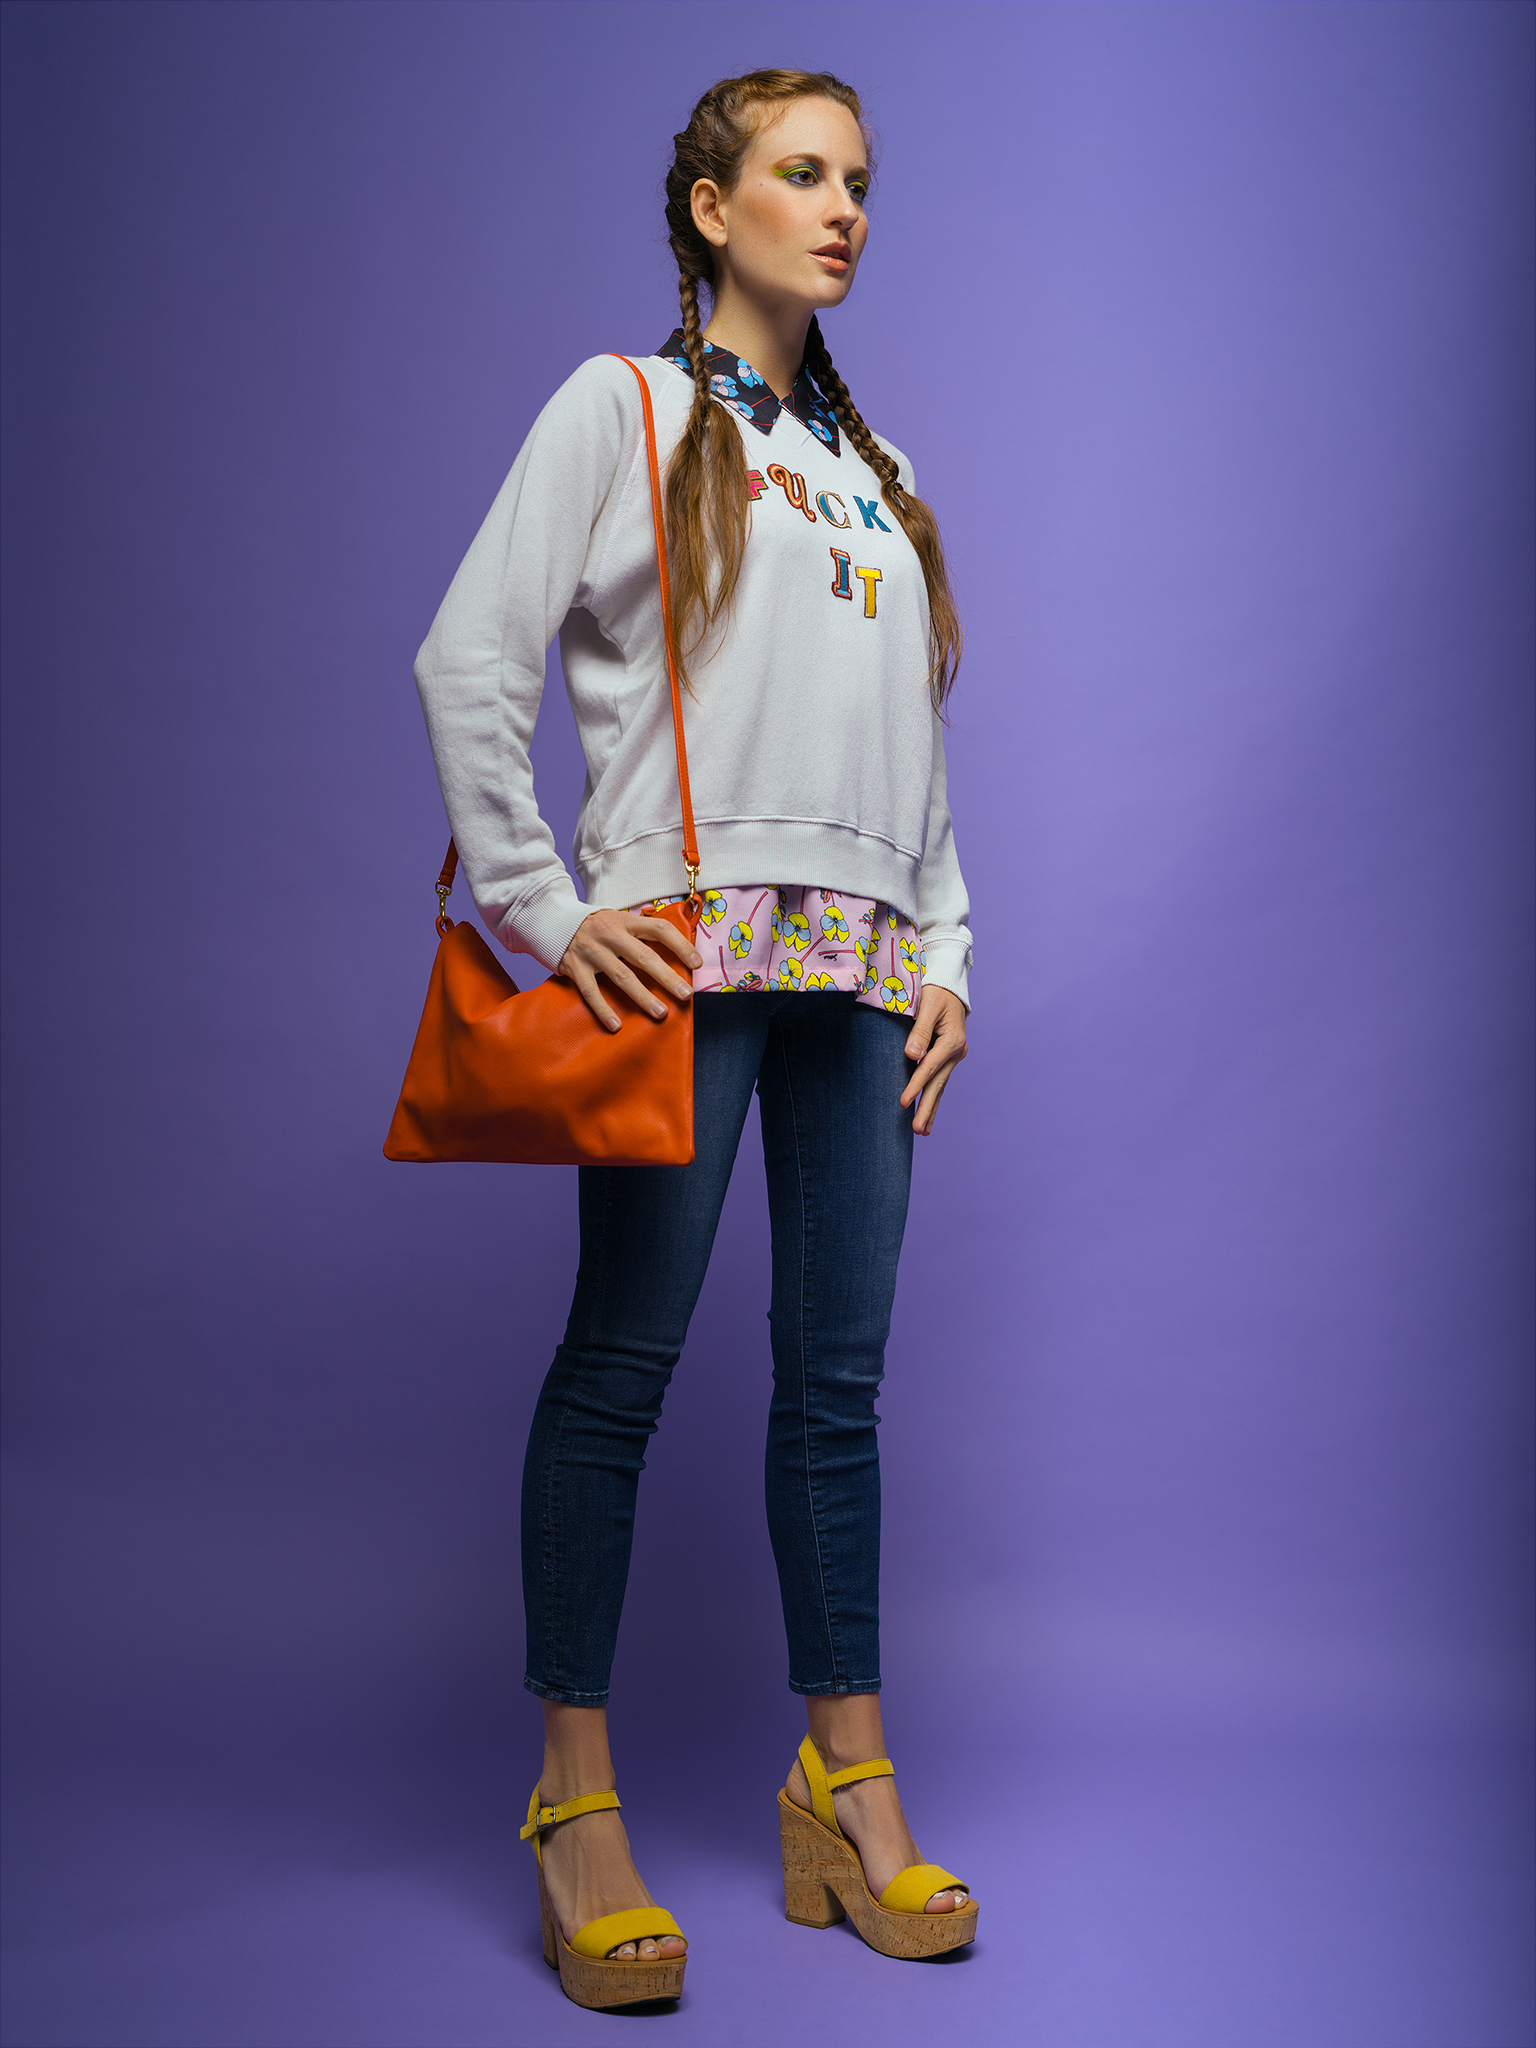 Model: Rossi Saenz  Clothing & Bag: Bird Boutique   Wedges: Southern Hippie